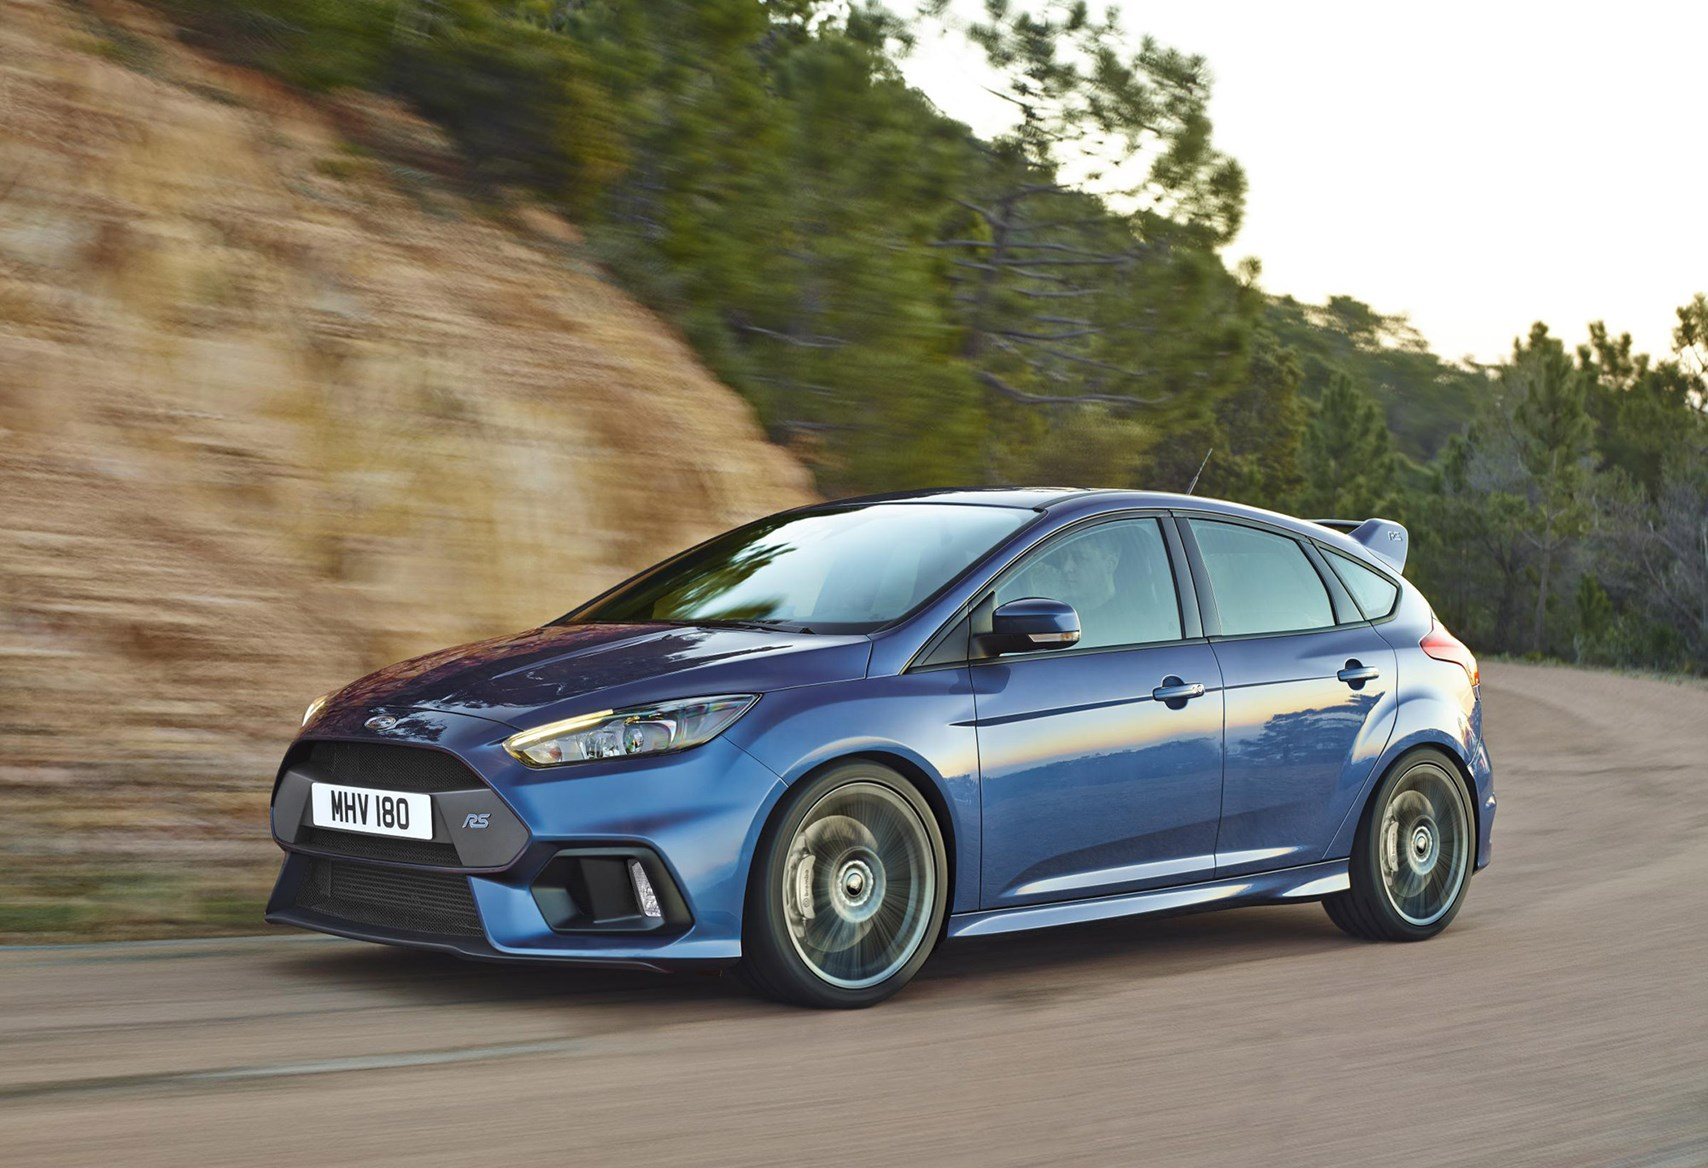 Ford Focus RS AWD 2016 2.3 Ecoboost sports car hot hatch